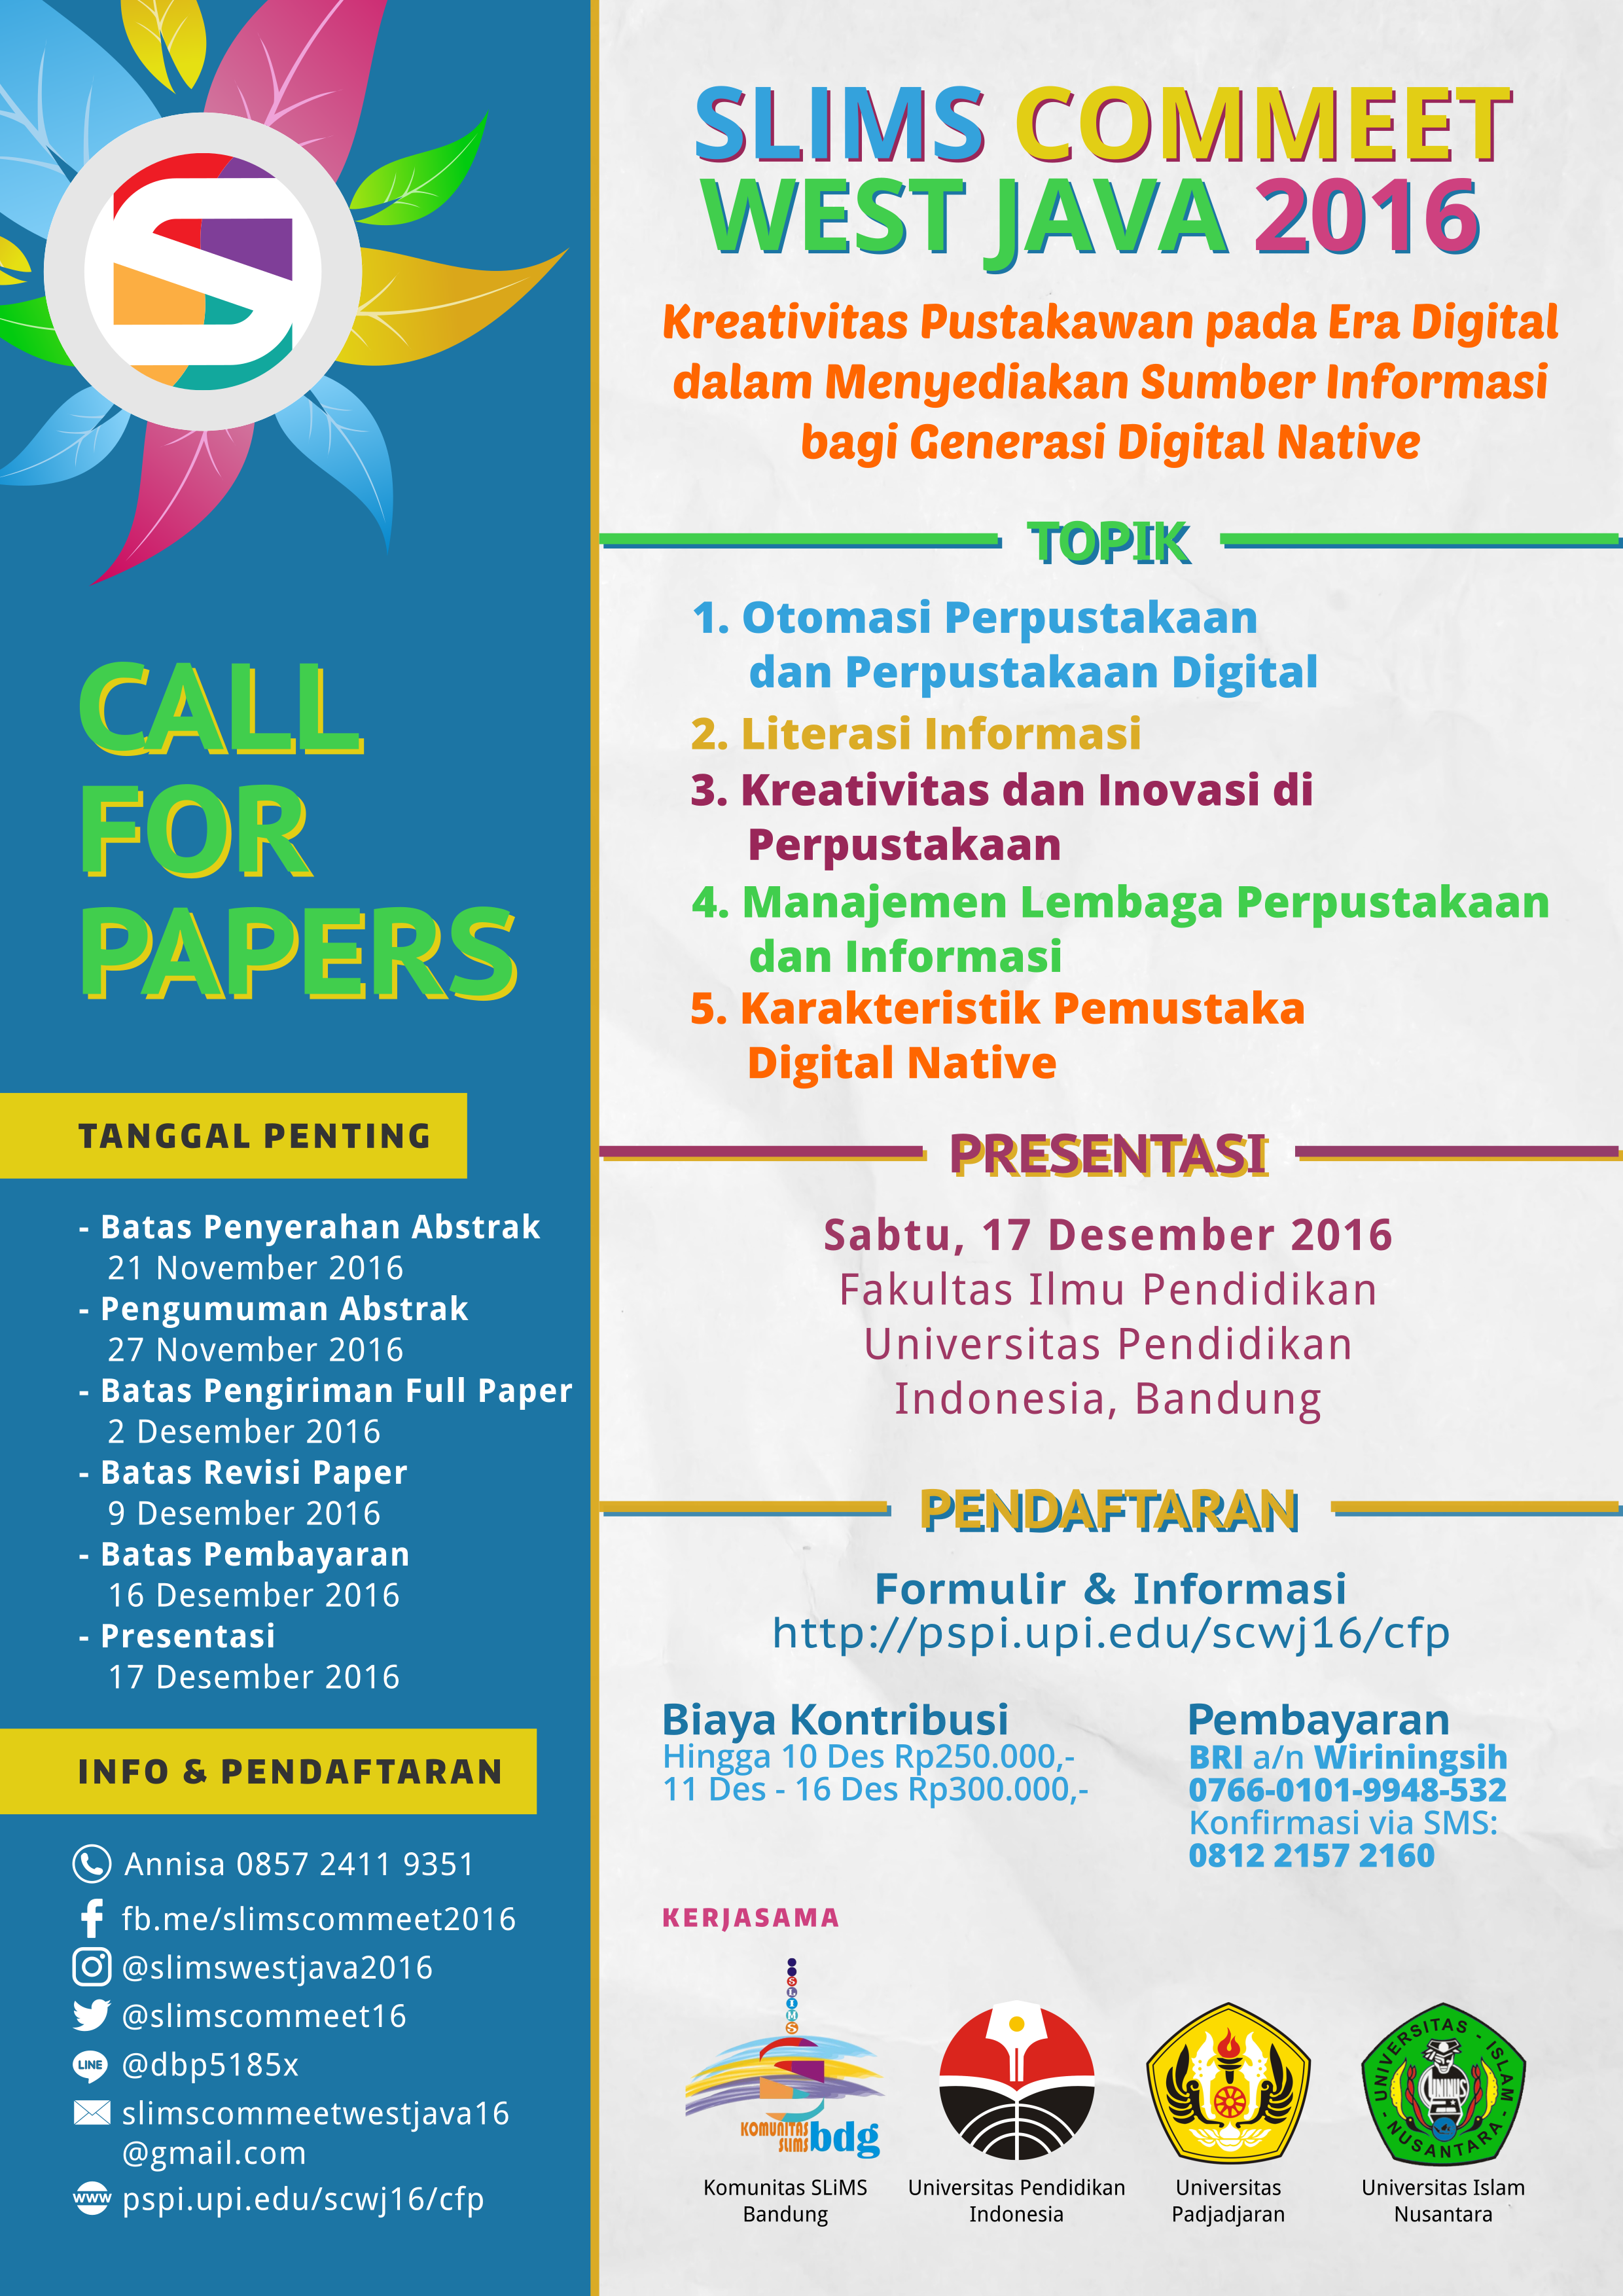 poster-call-for-papers-slims-commeet-west-java-2016-v6